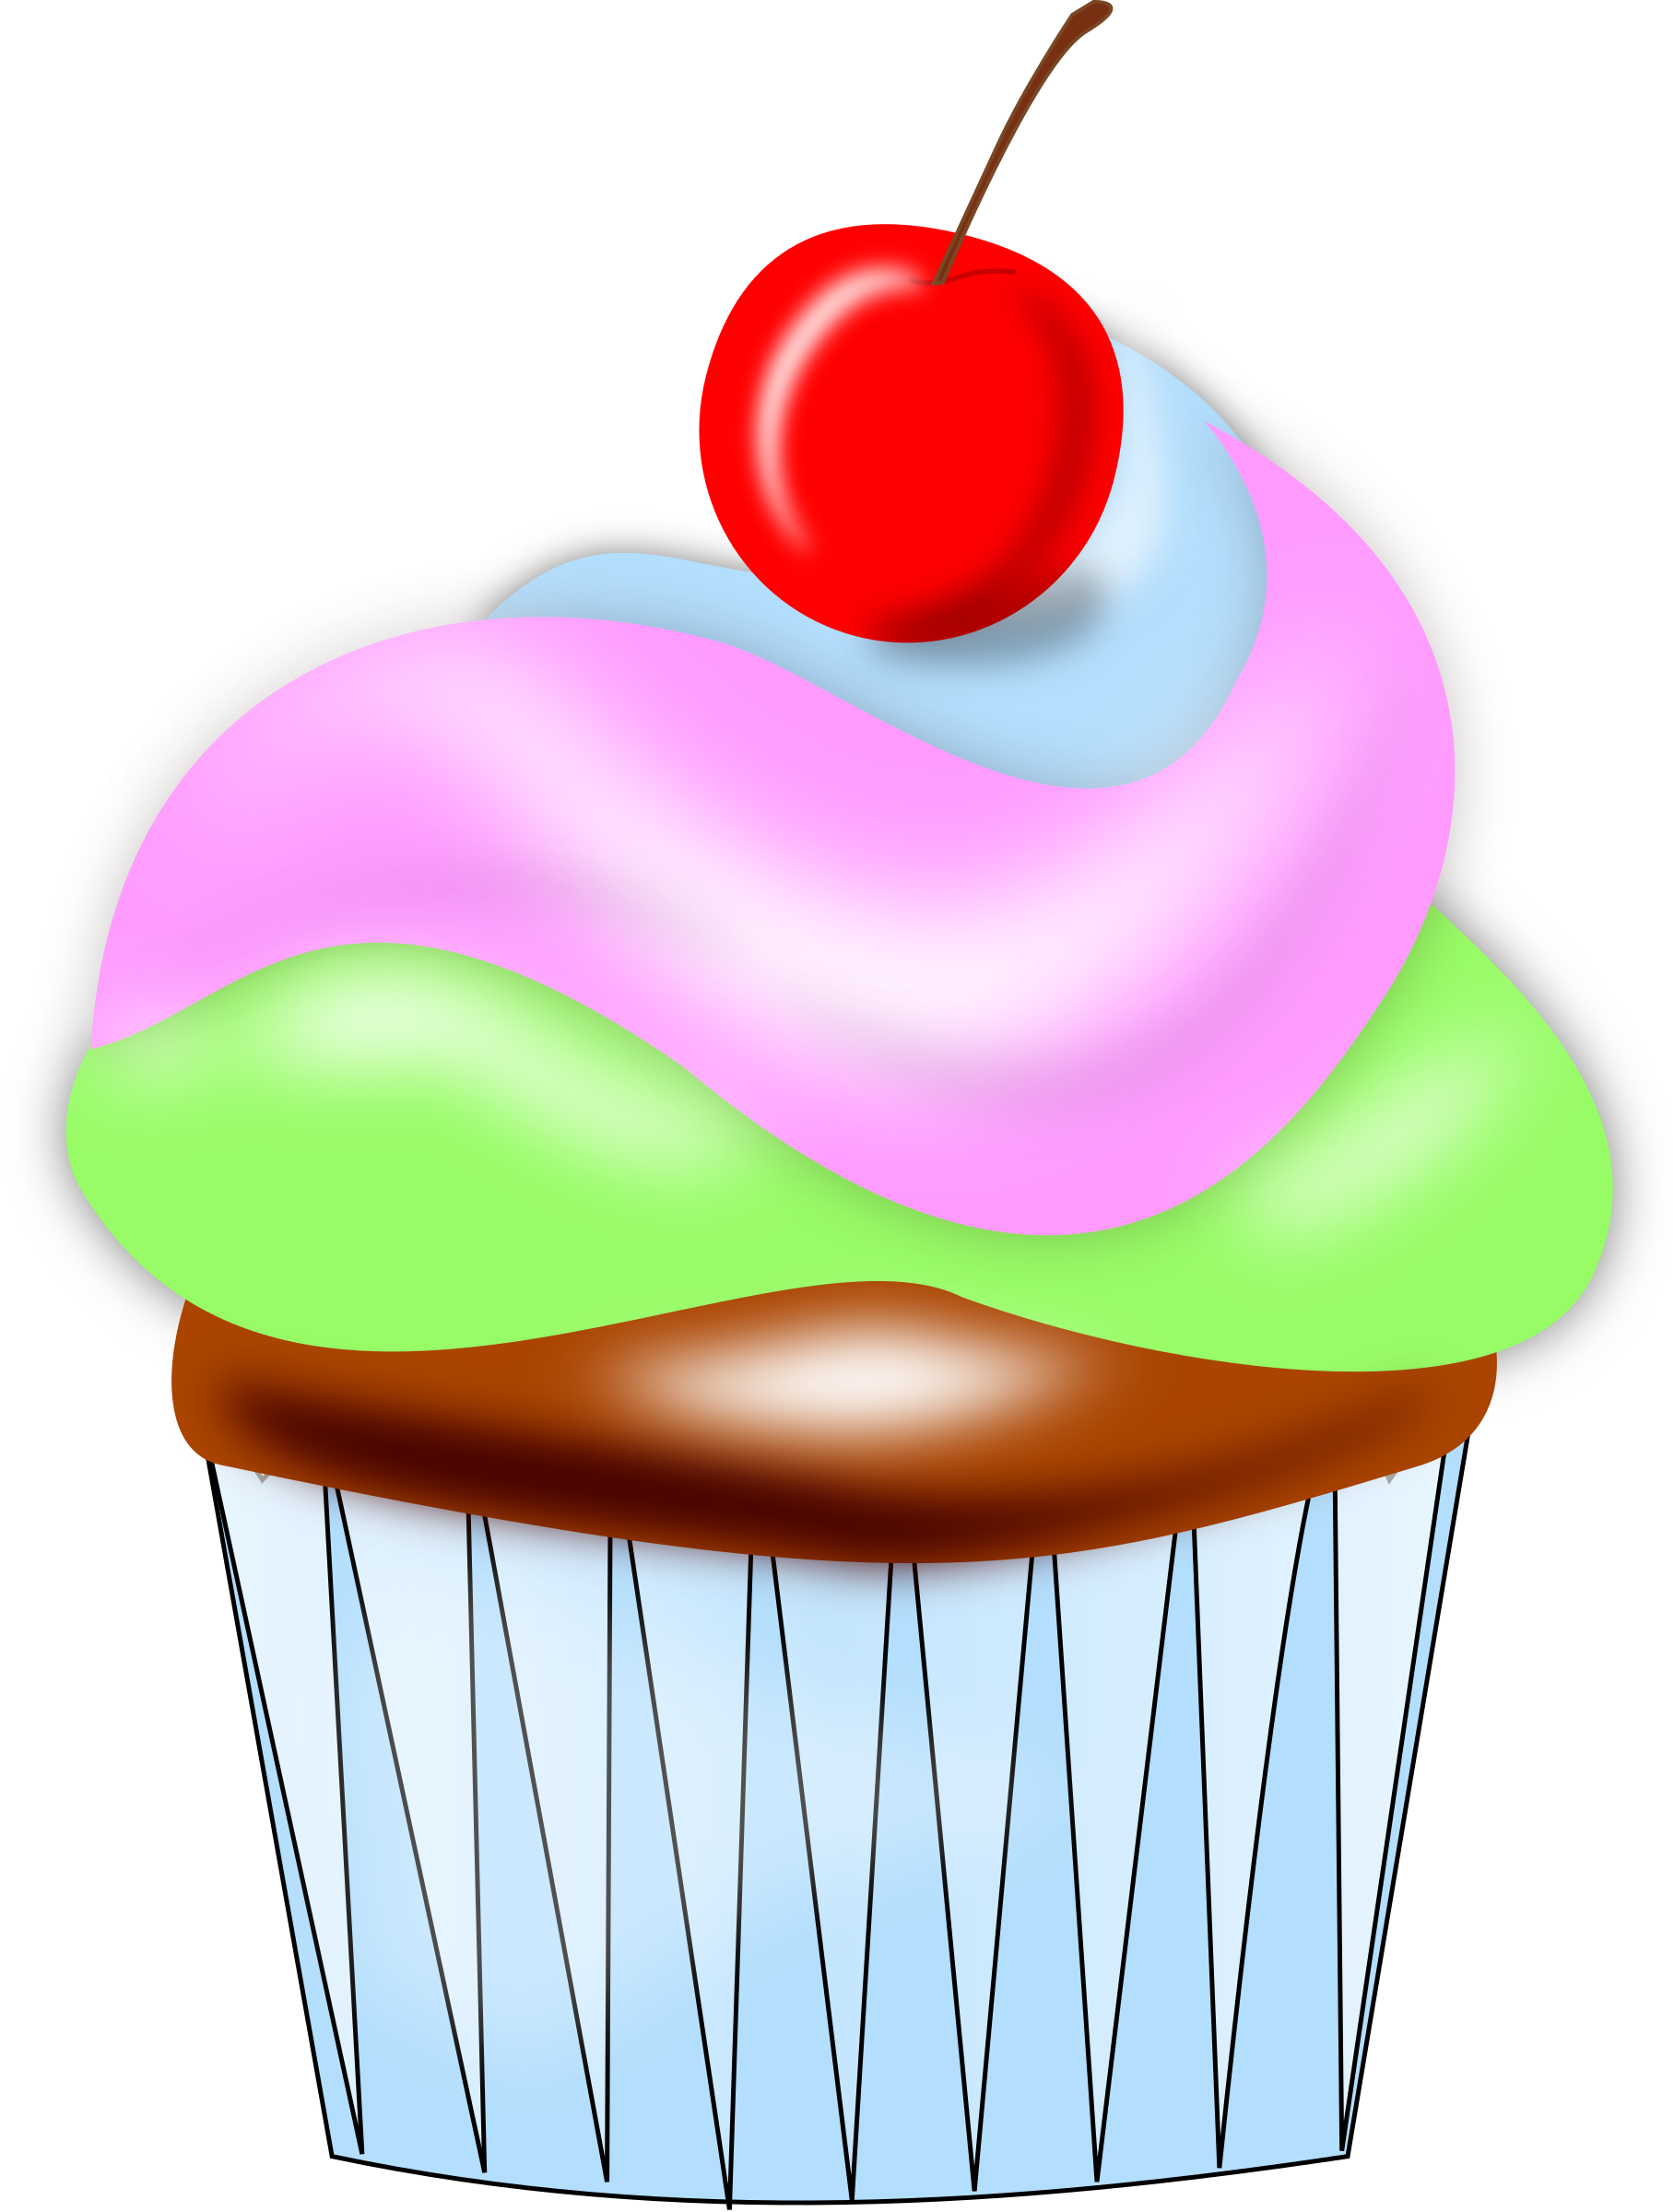 Cupcake w cherry by aburgan